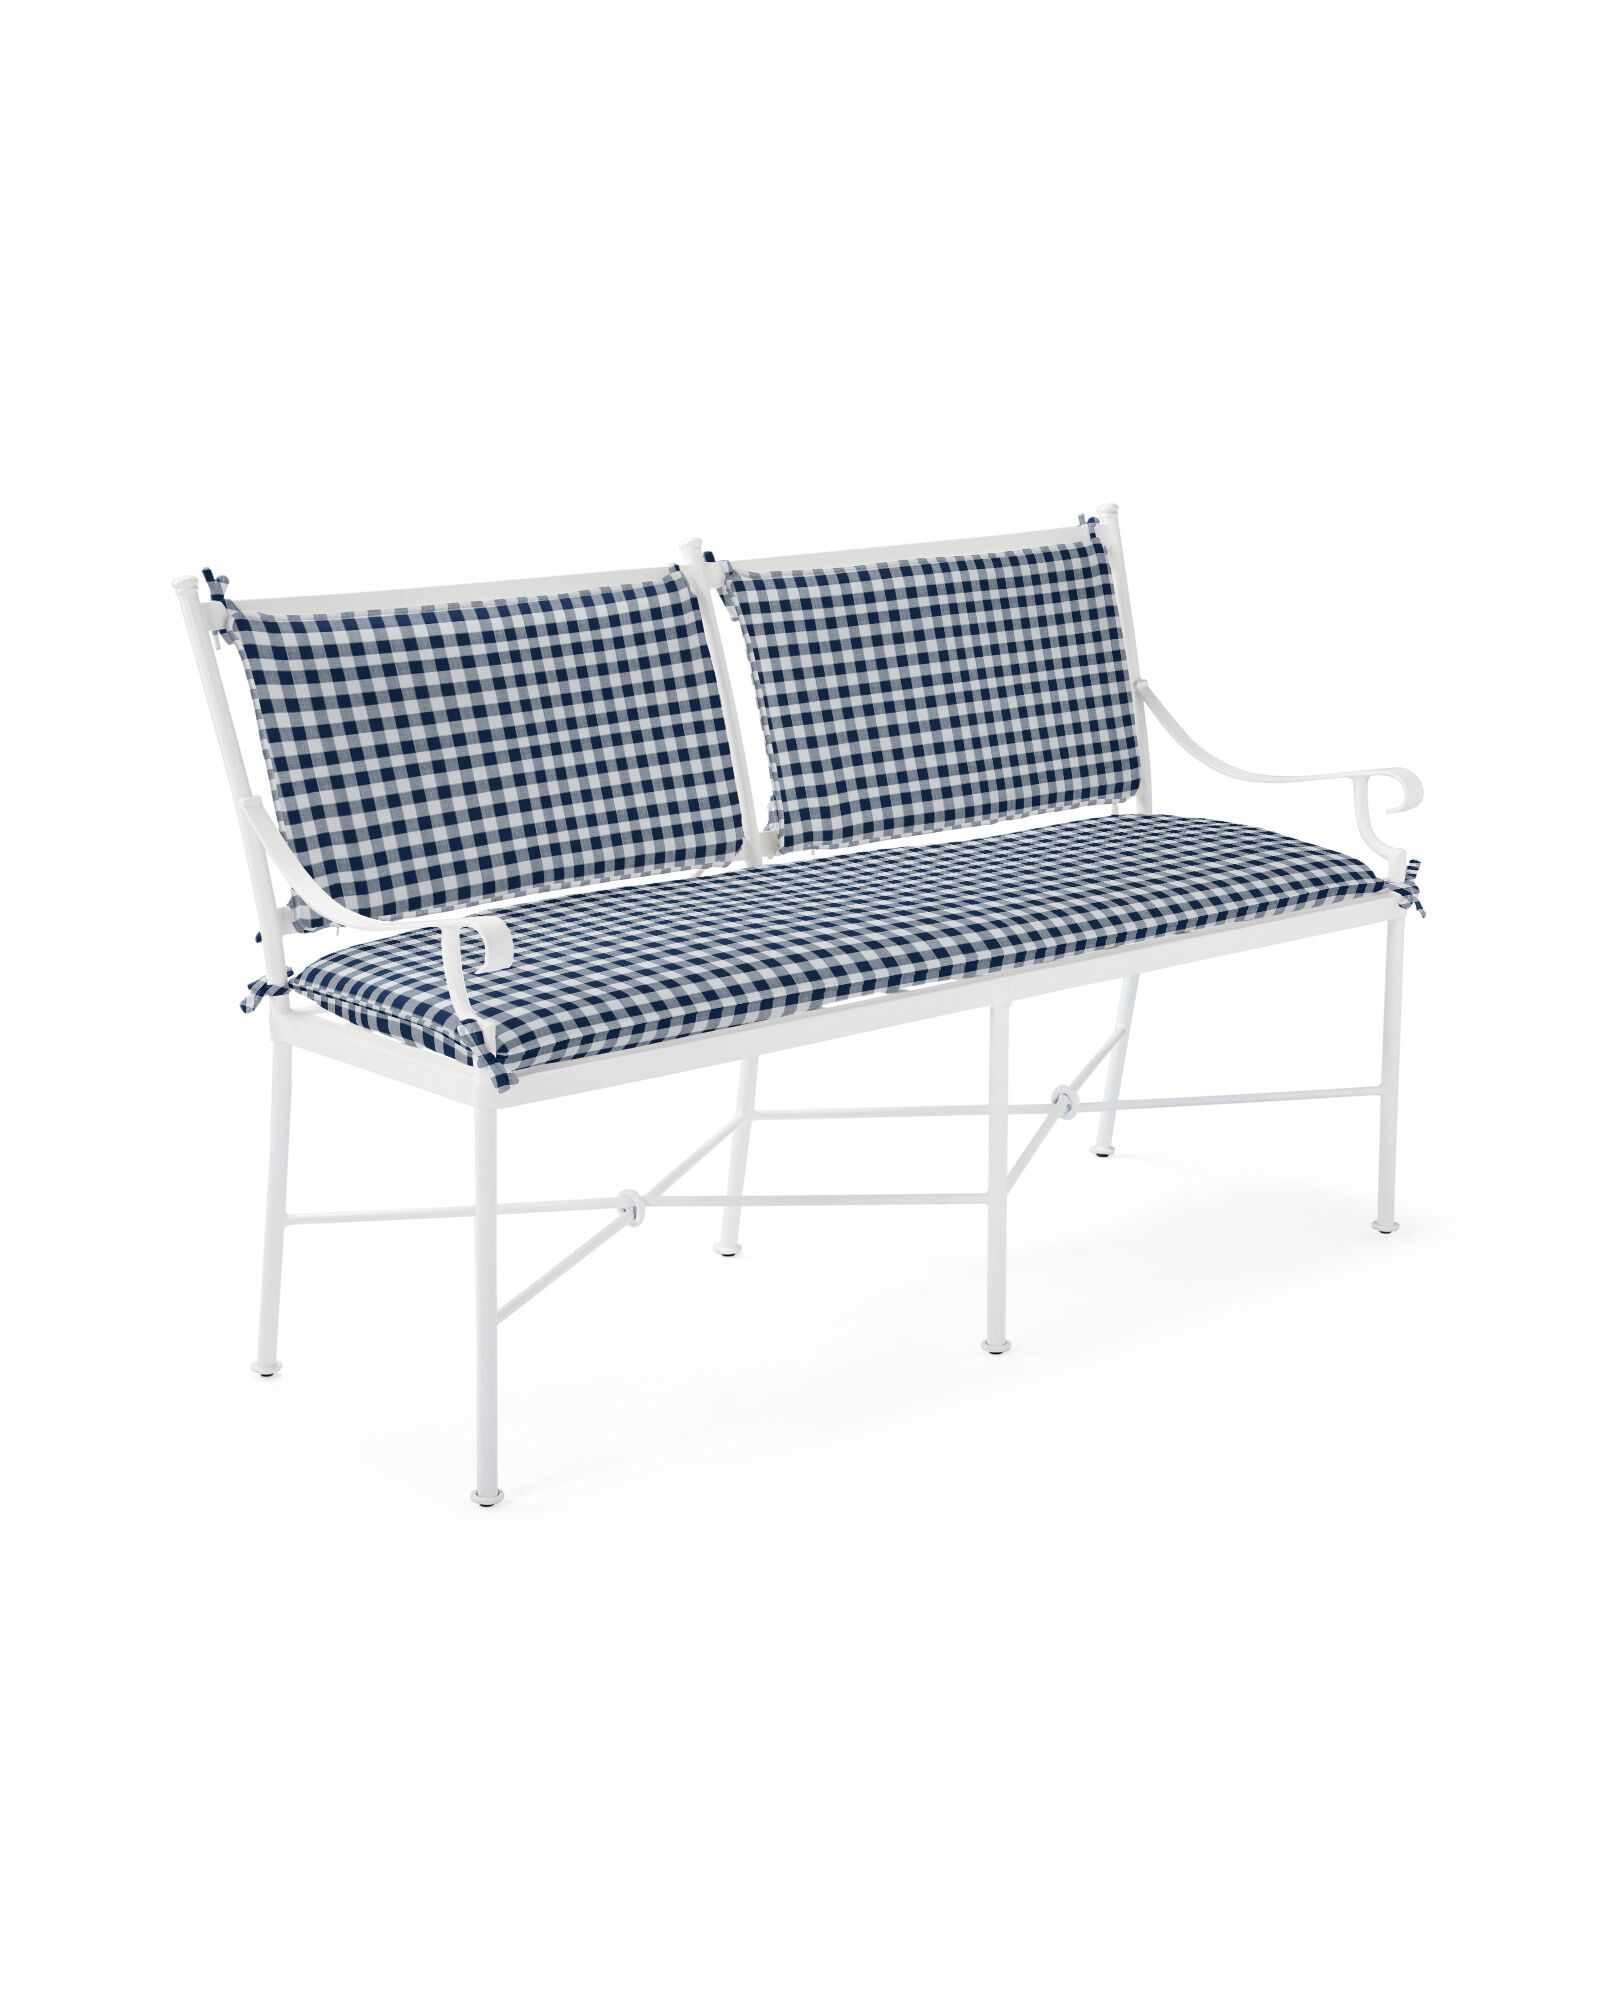 Cushion Cover for Gardener Bench, Perennials Classic Gingham Navy